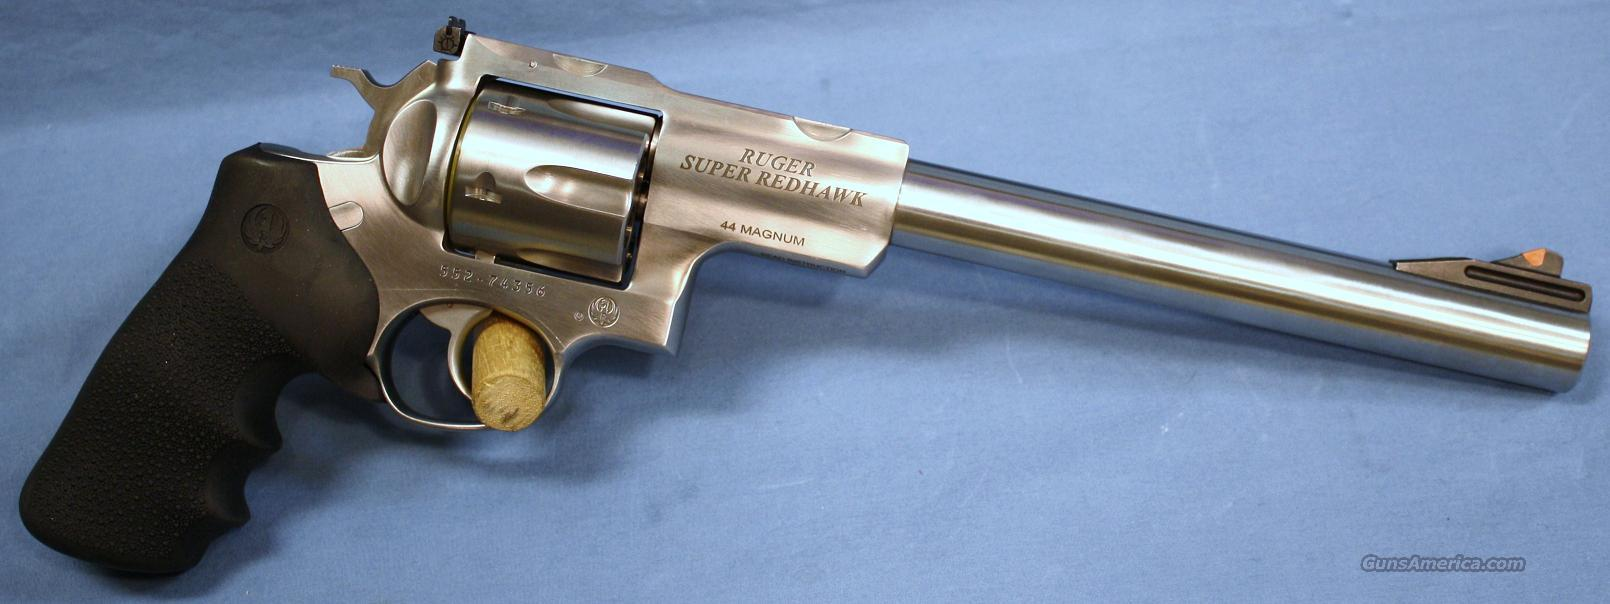 Ruger Super Redhawk Double Action Revolver 44 M For Sale